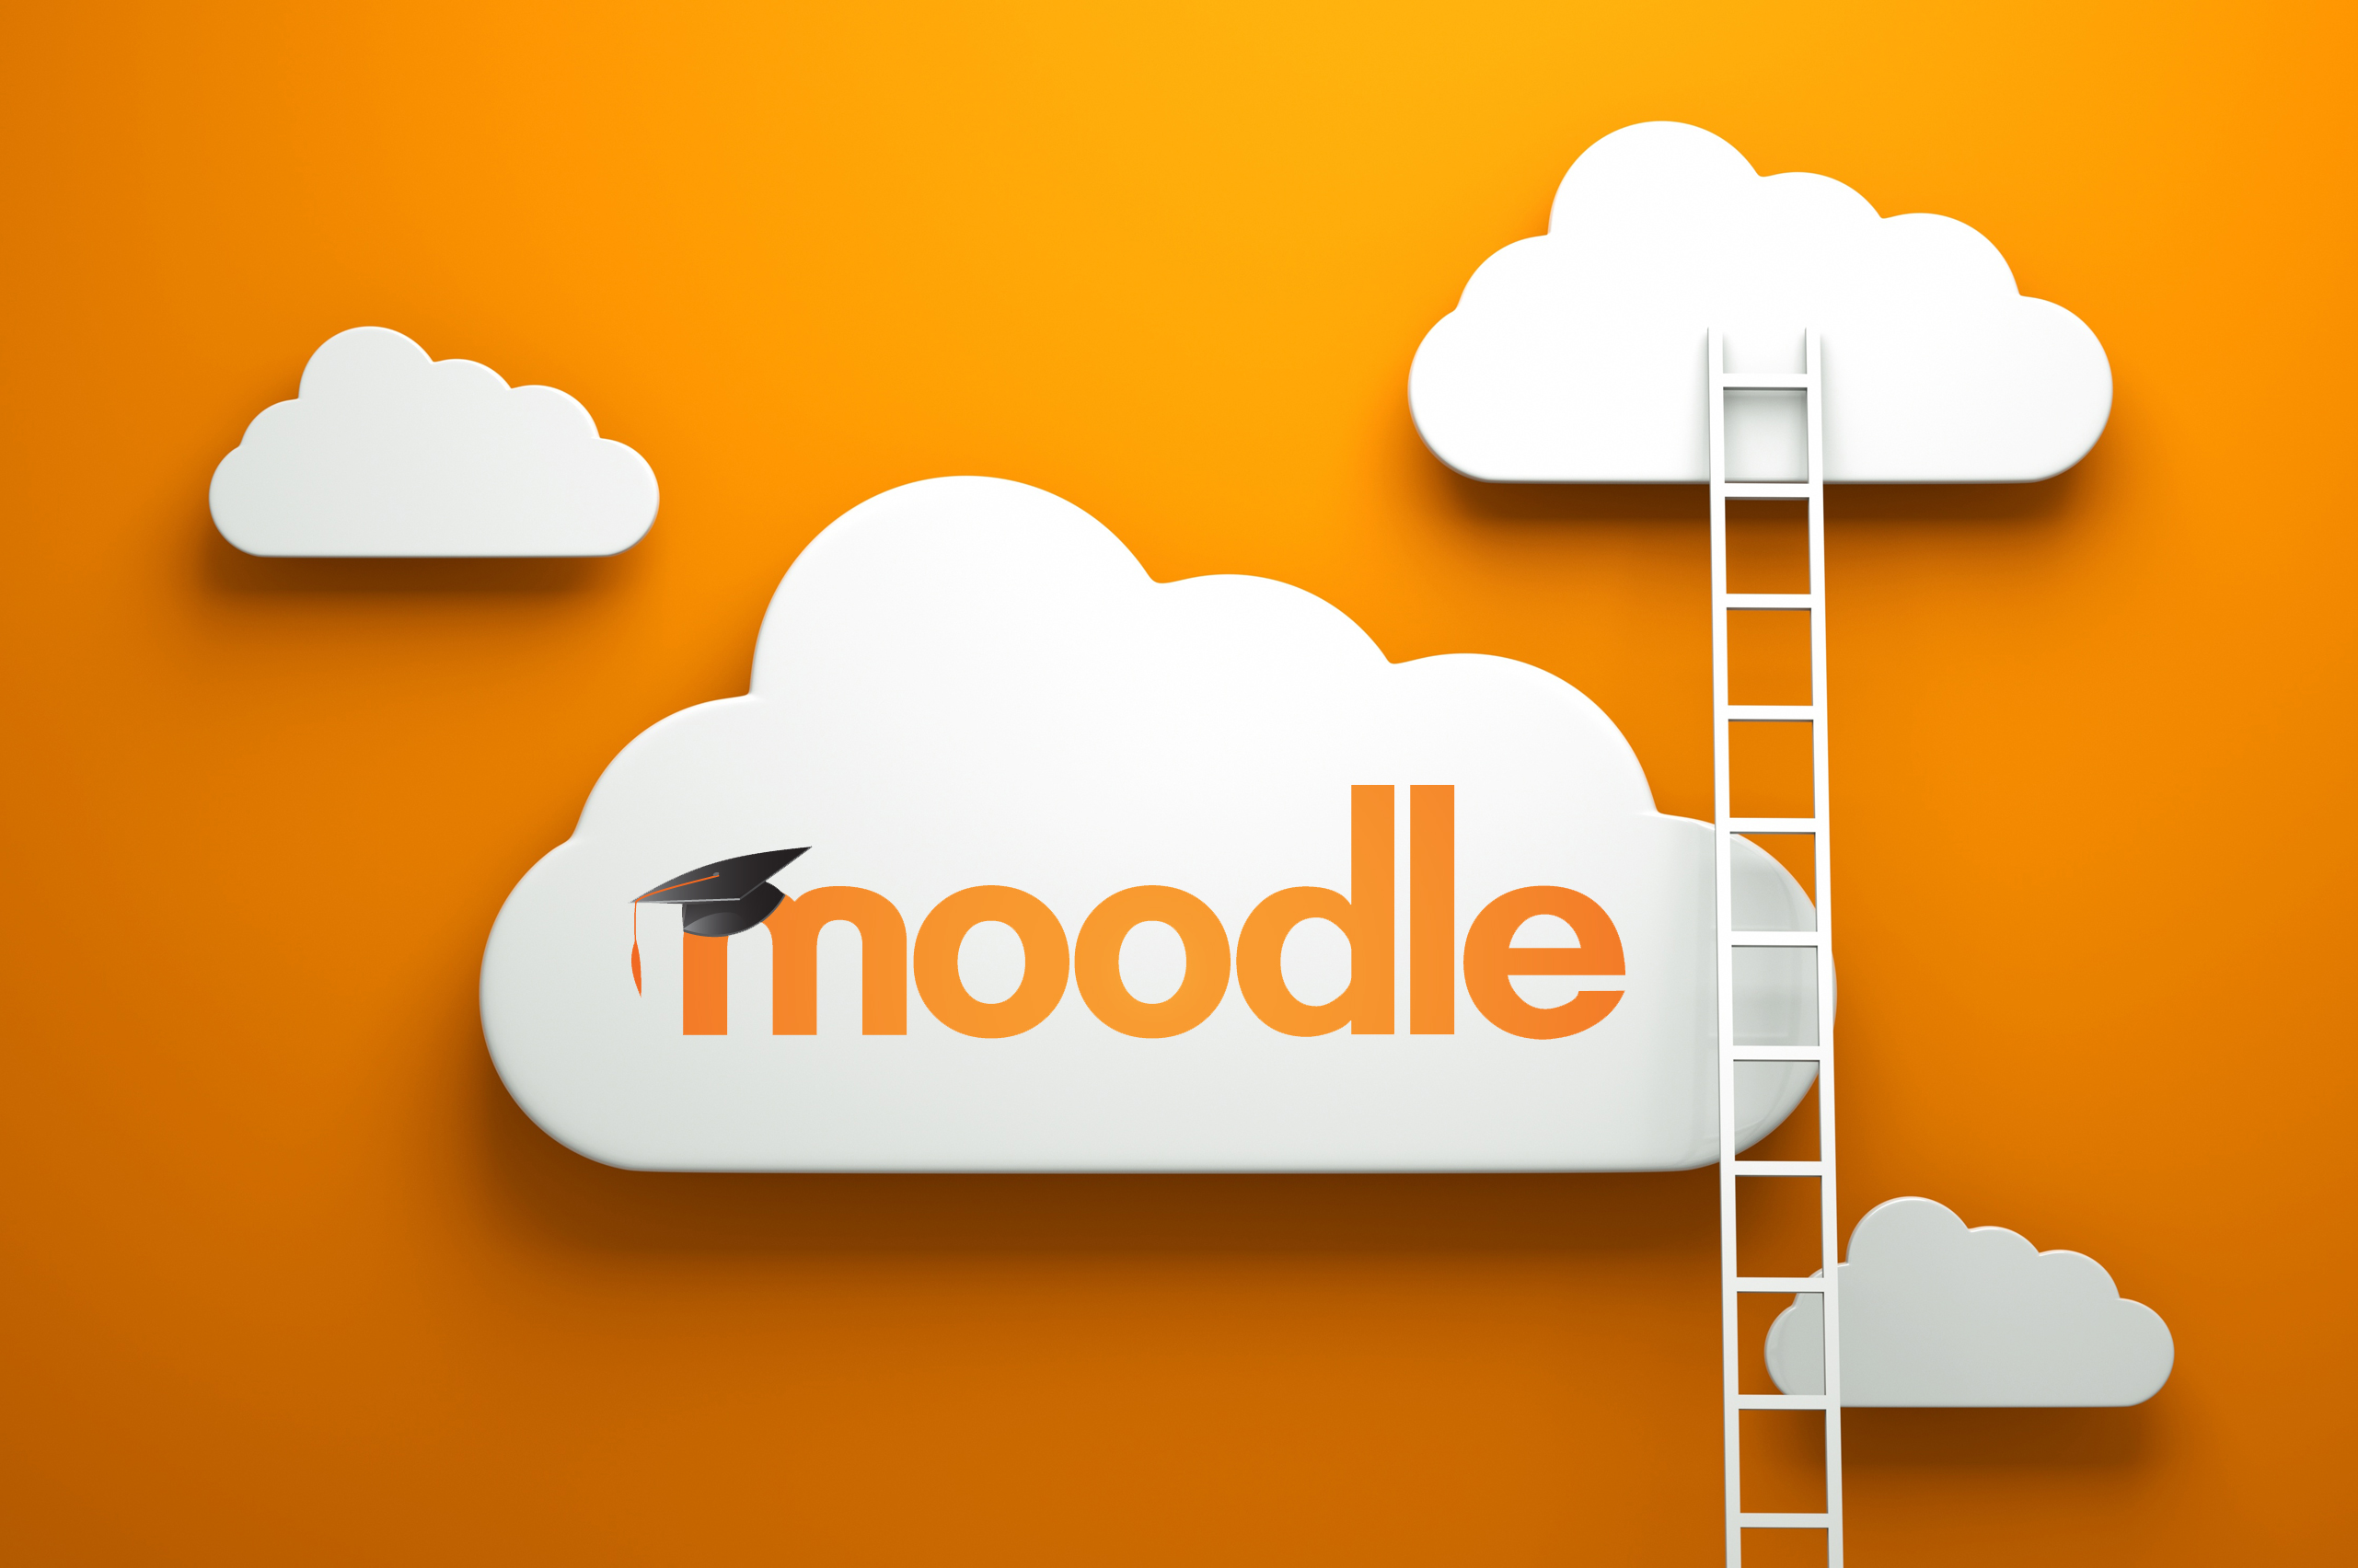 Moodle as a Learning Management System